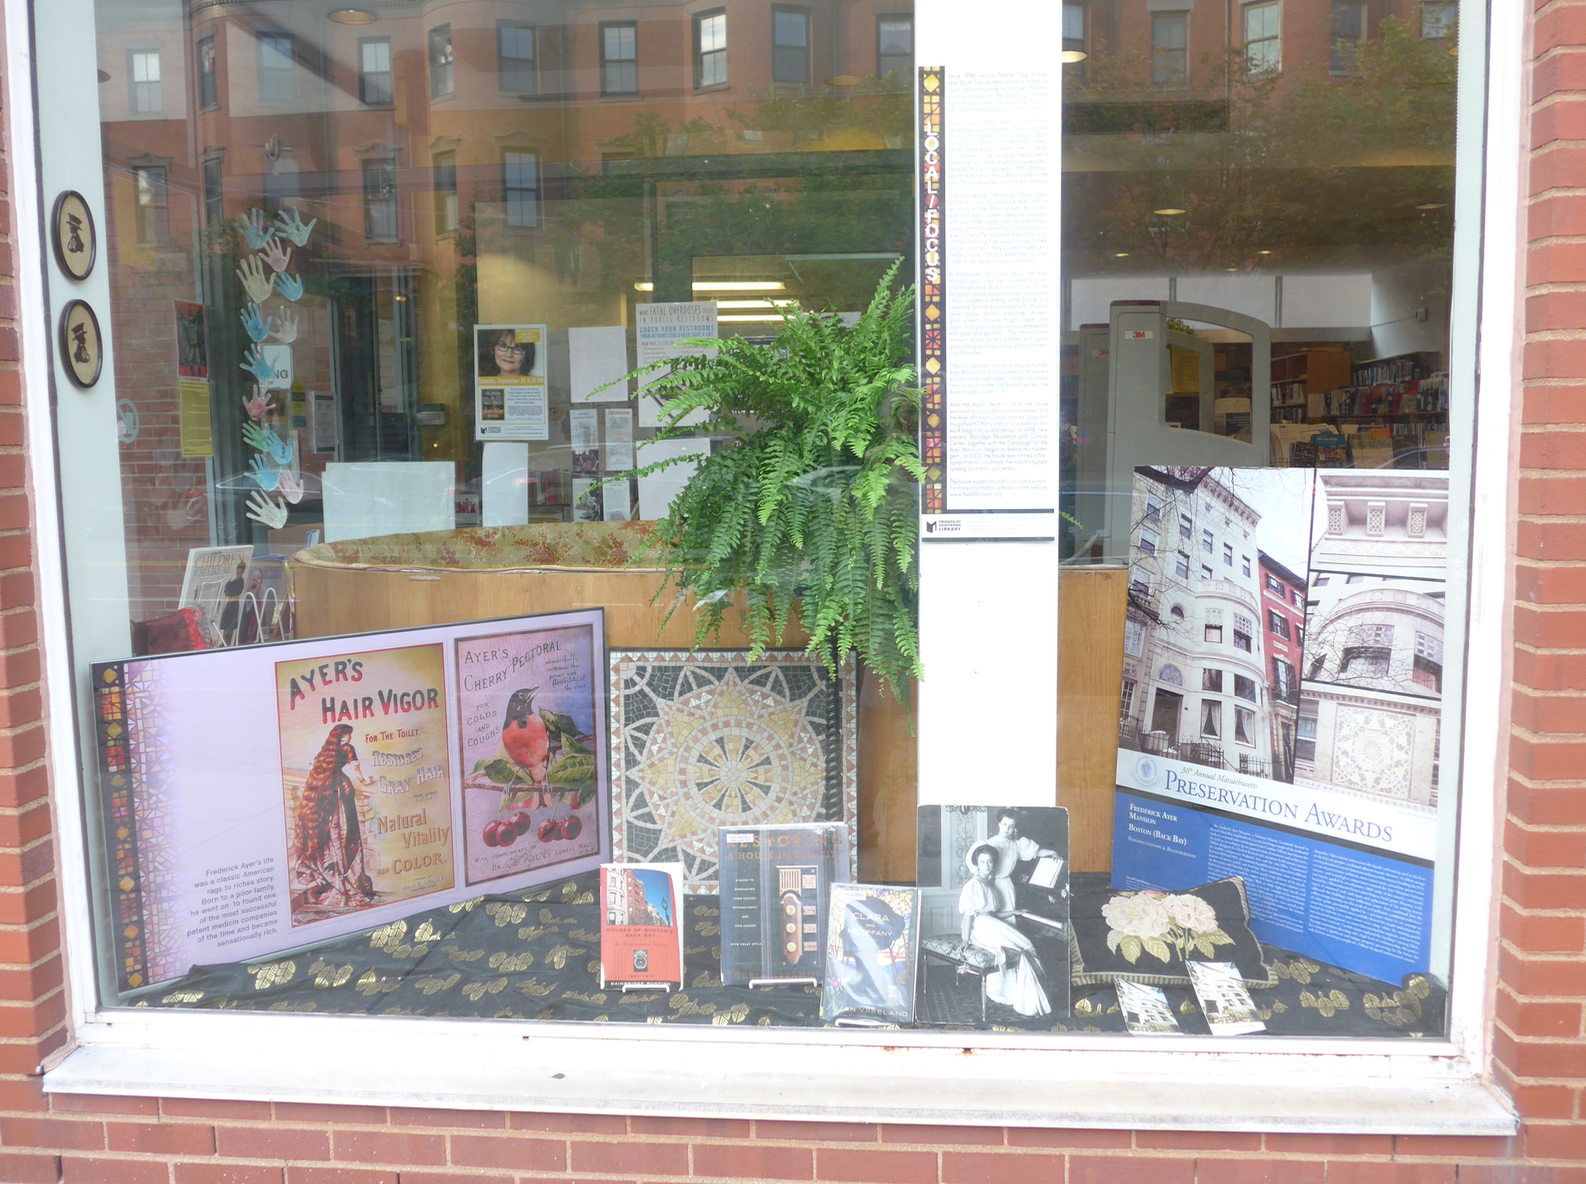 The September Local/Focus installation in the Tremont Street window of the South End library